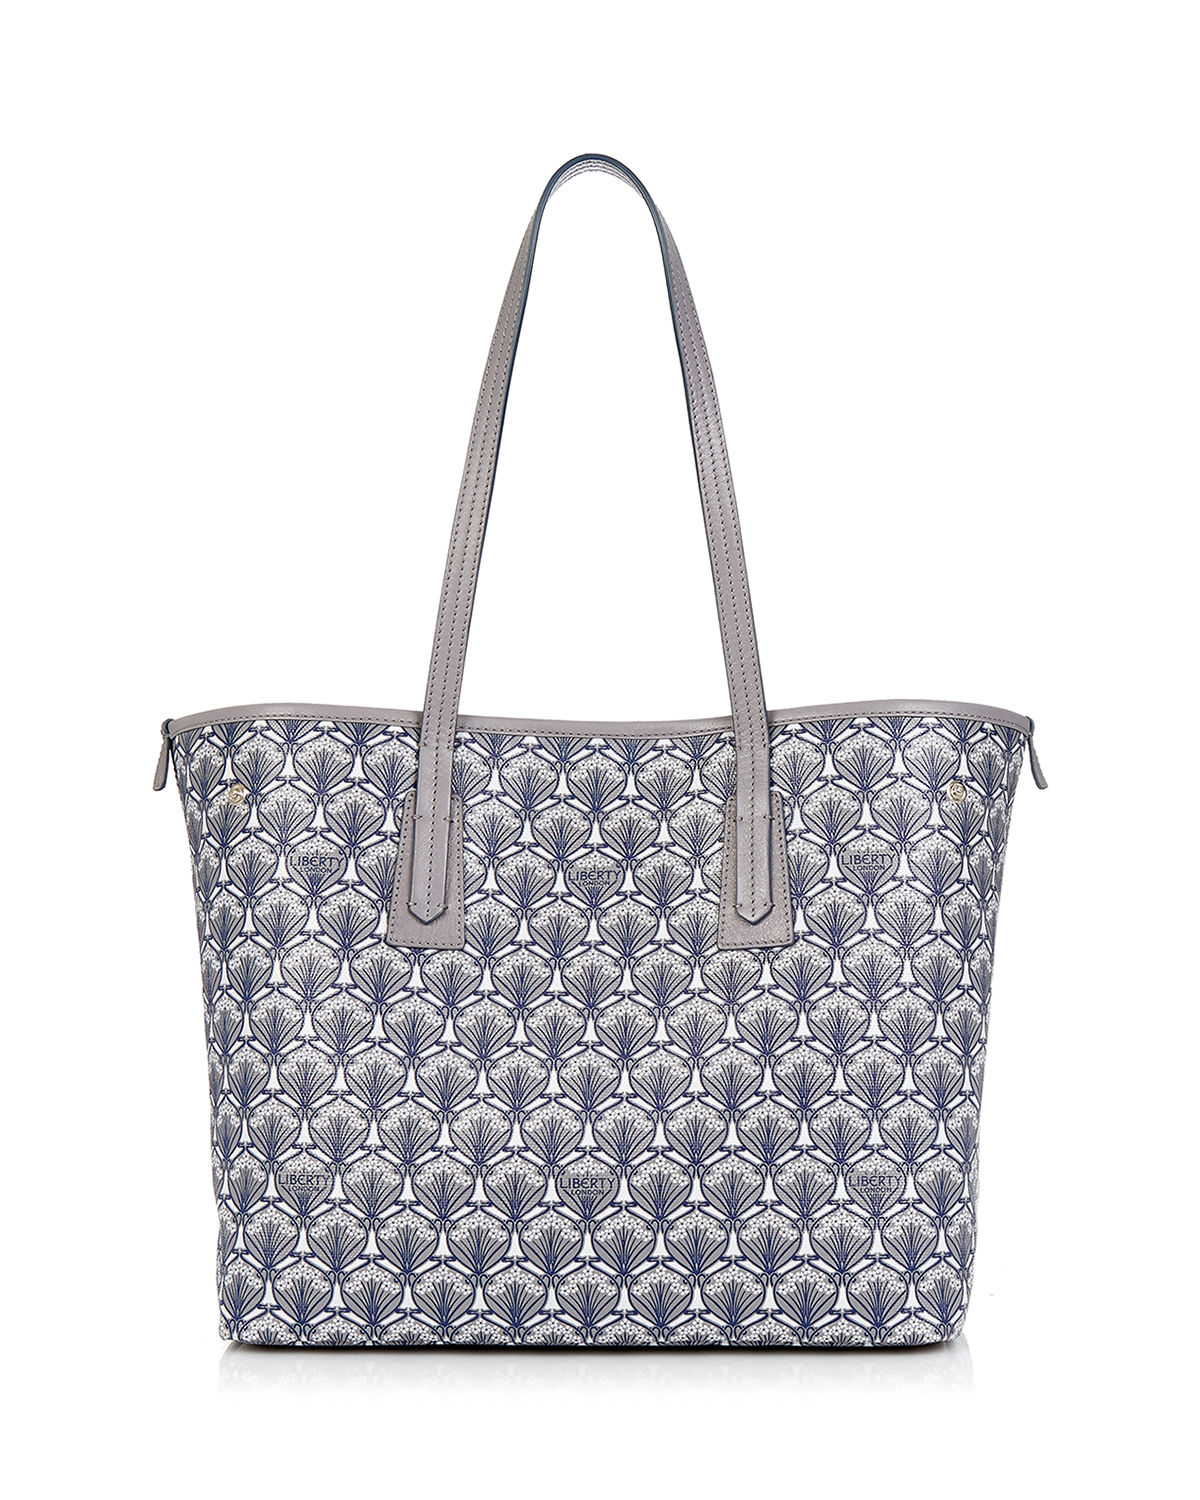 16342aa50551 Liberty London Marlborough Iphis-Print Tote Bag